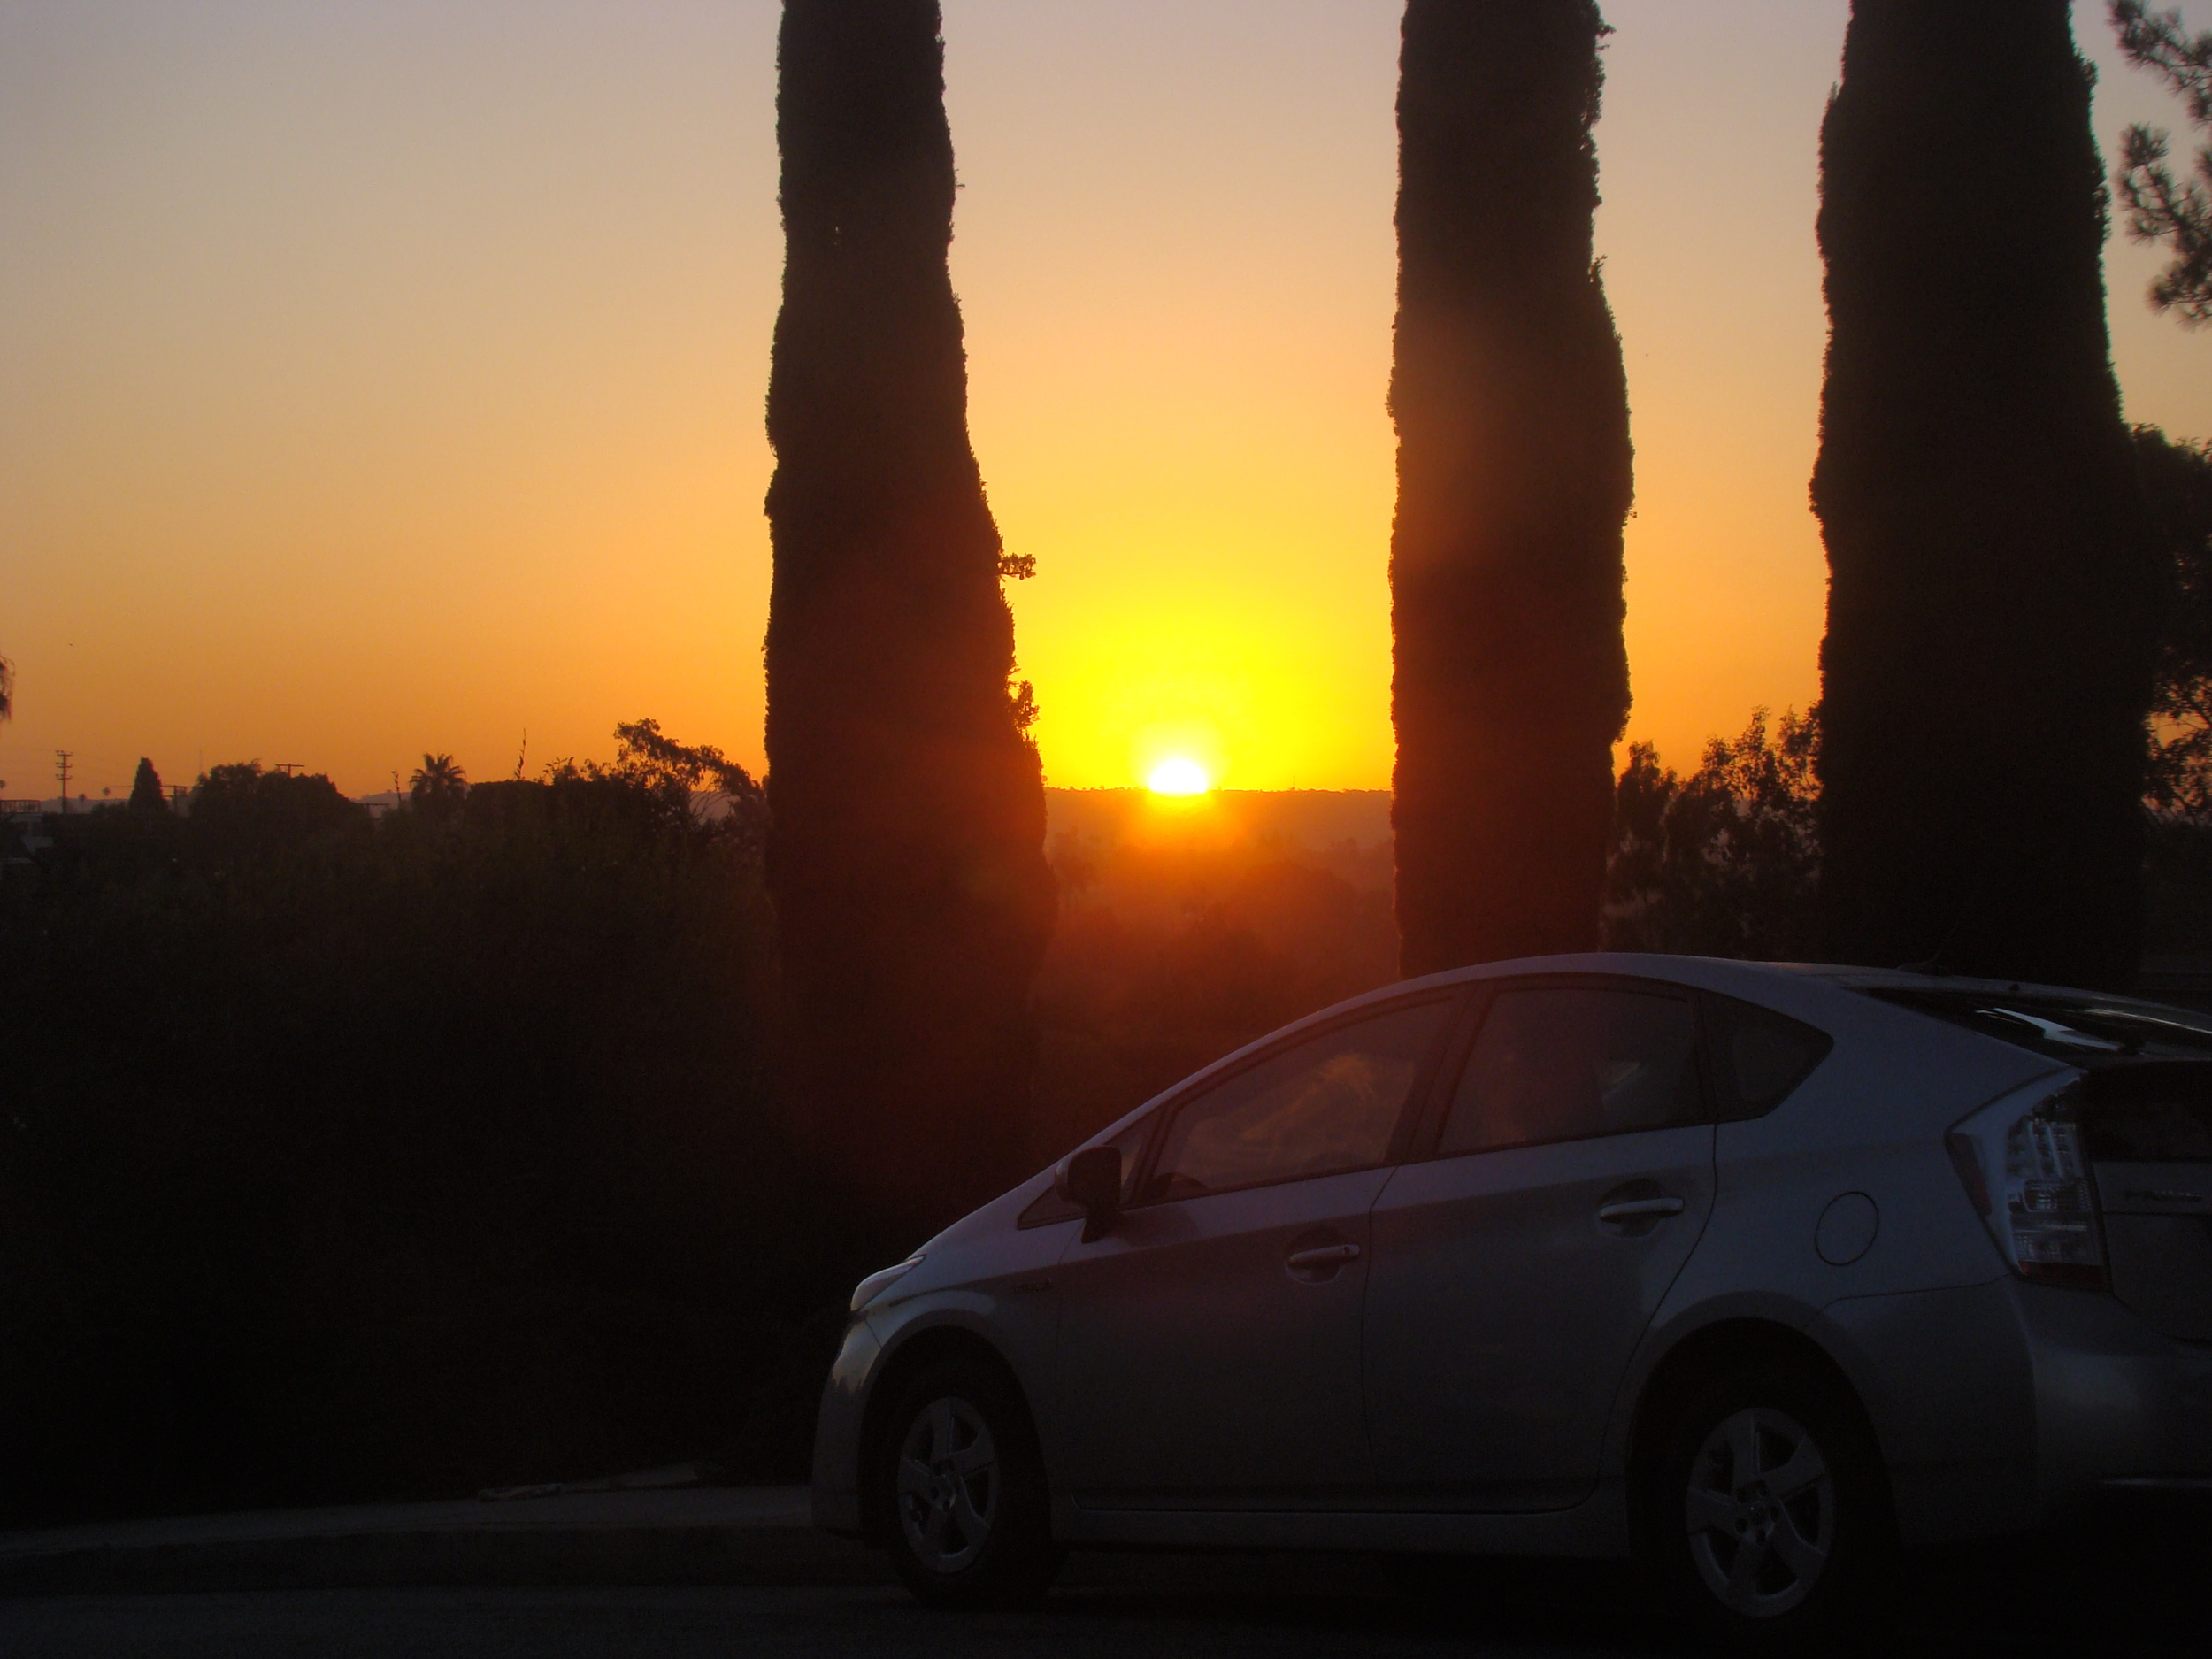 Sunrise over my Prius on Ashland at 14th in Santa Monica....    Never lose a Holy curiosity. Stop every day to understand and appreciate a little of the Mystery that surrounds you, and, your life will be filled with awe and discovery to the very end. …Albert Einstein